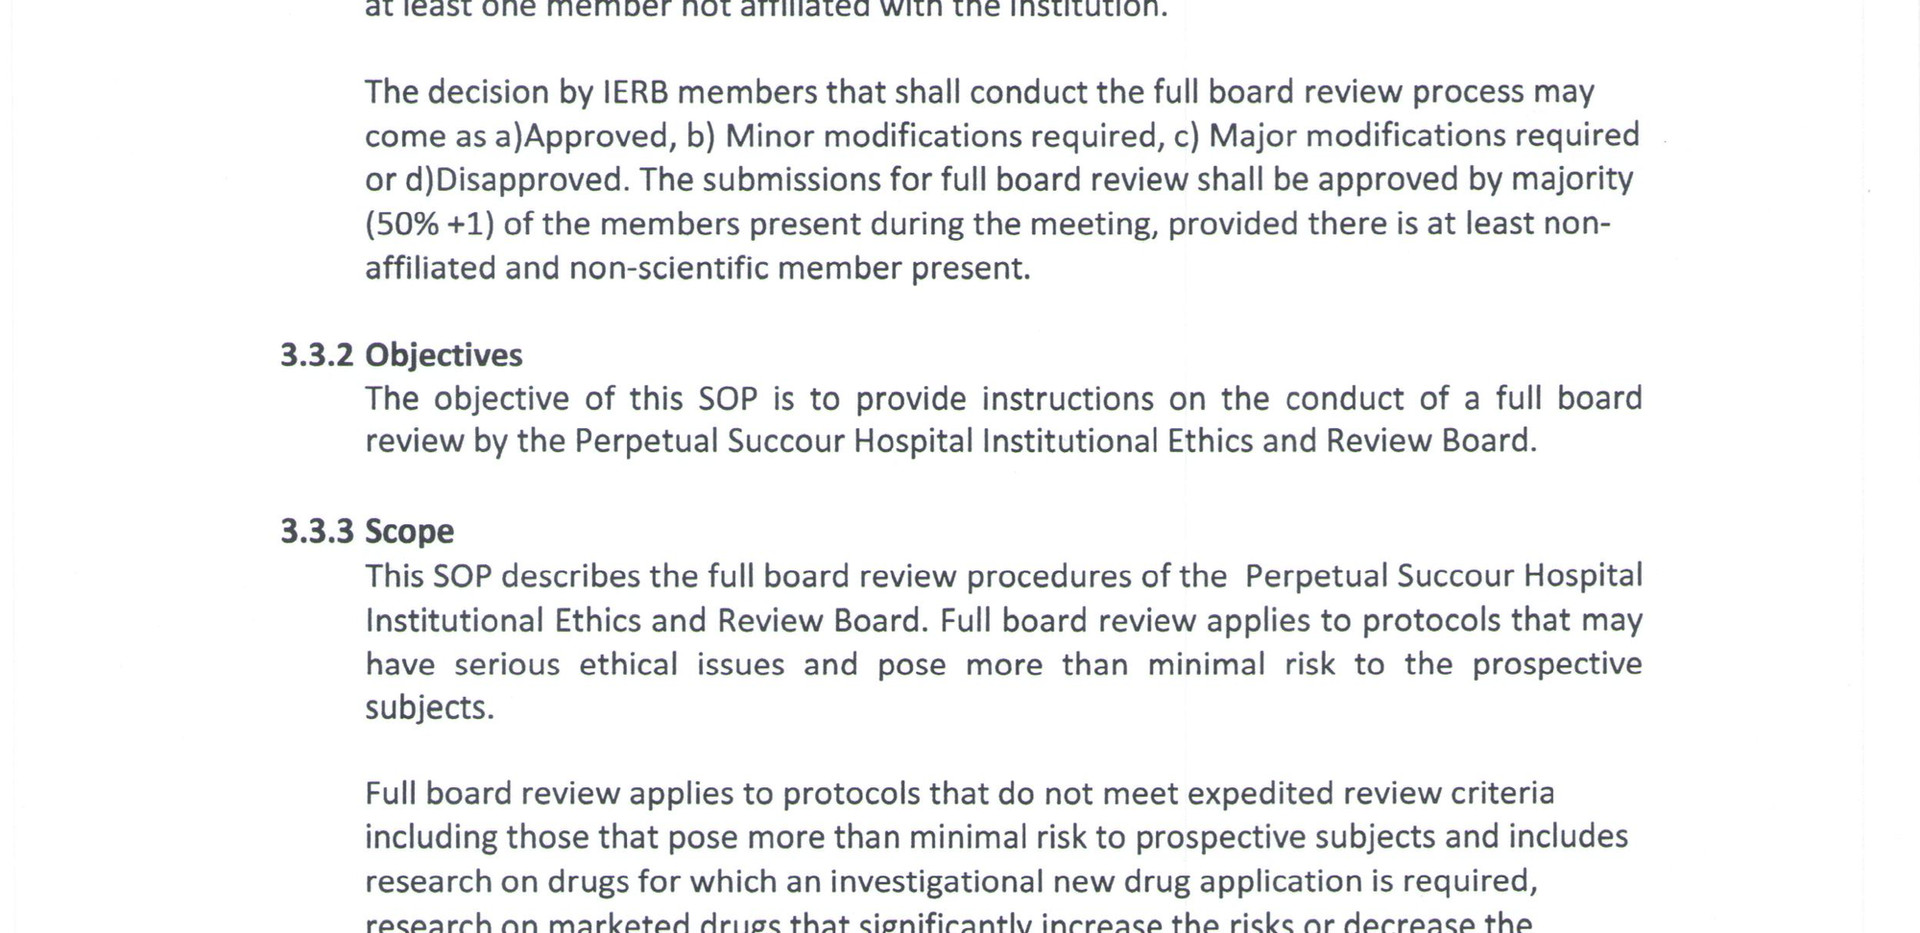 Conduct of Full Board Review 1.jpg